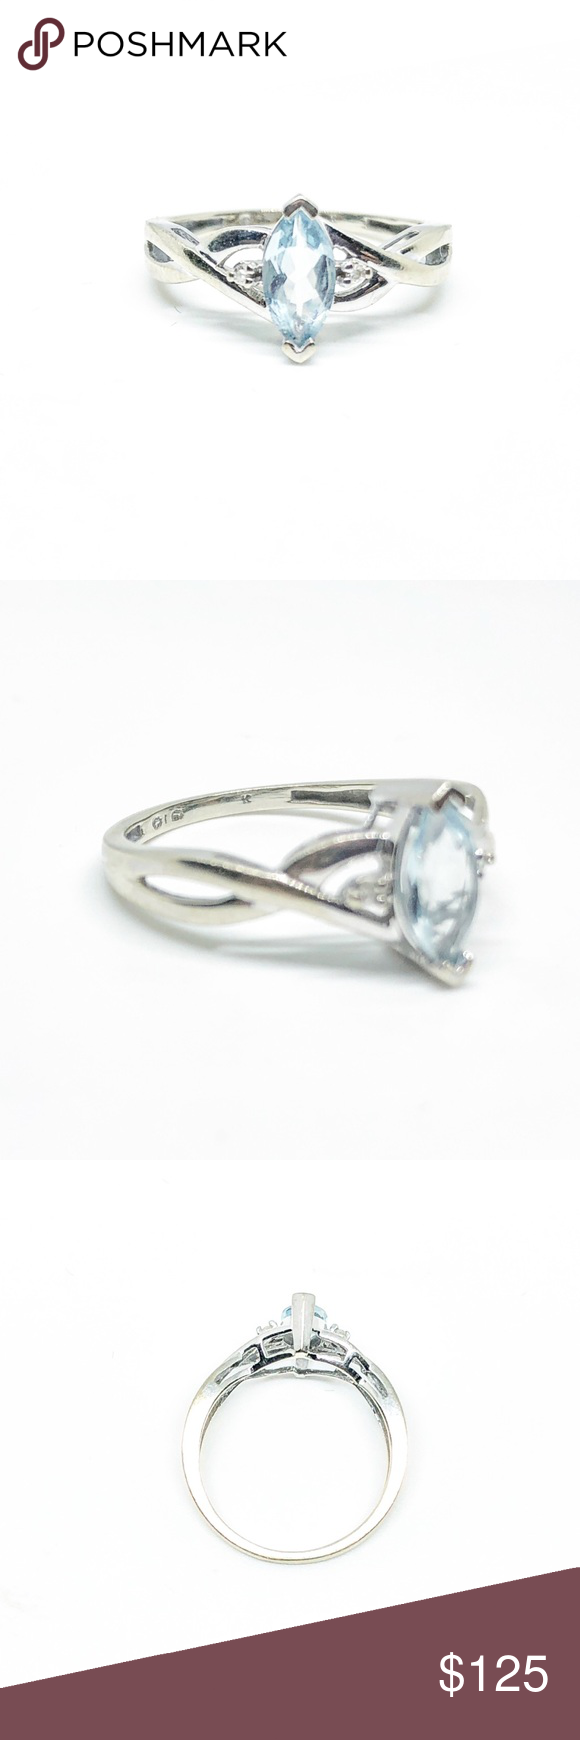 Sold 10k White Gold Aquamarine Diamond Ring White Gold Diamond Diamond Ring